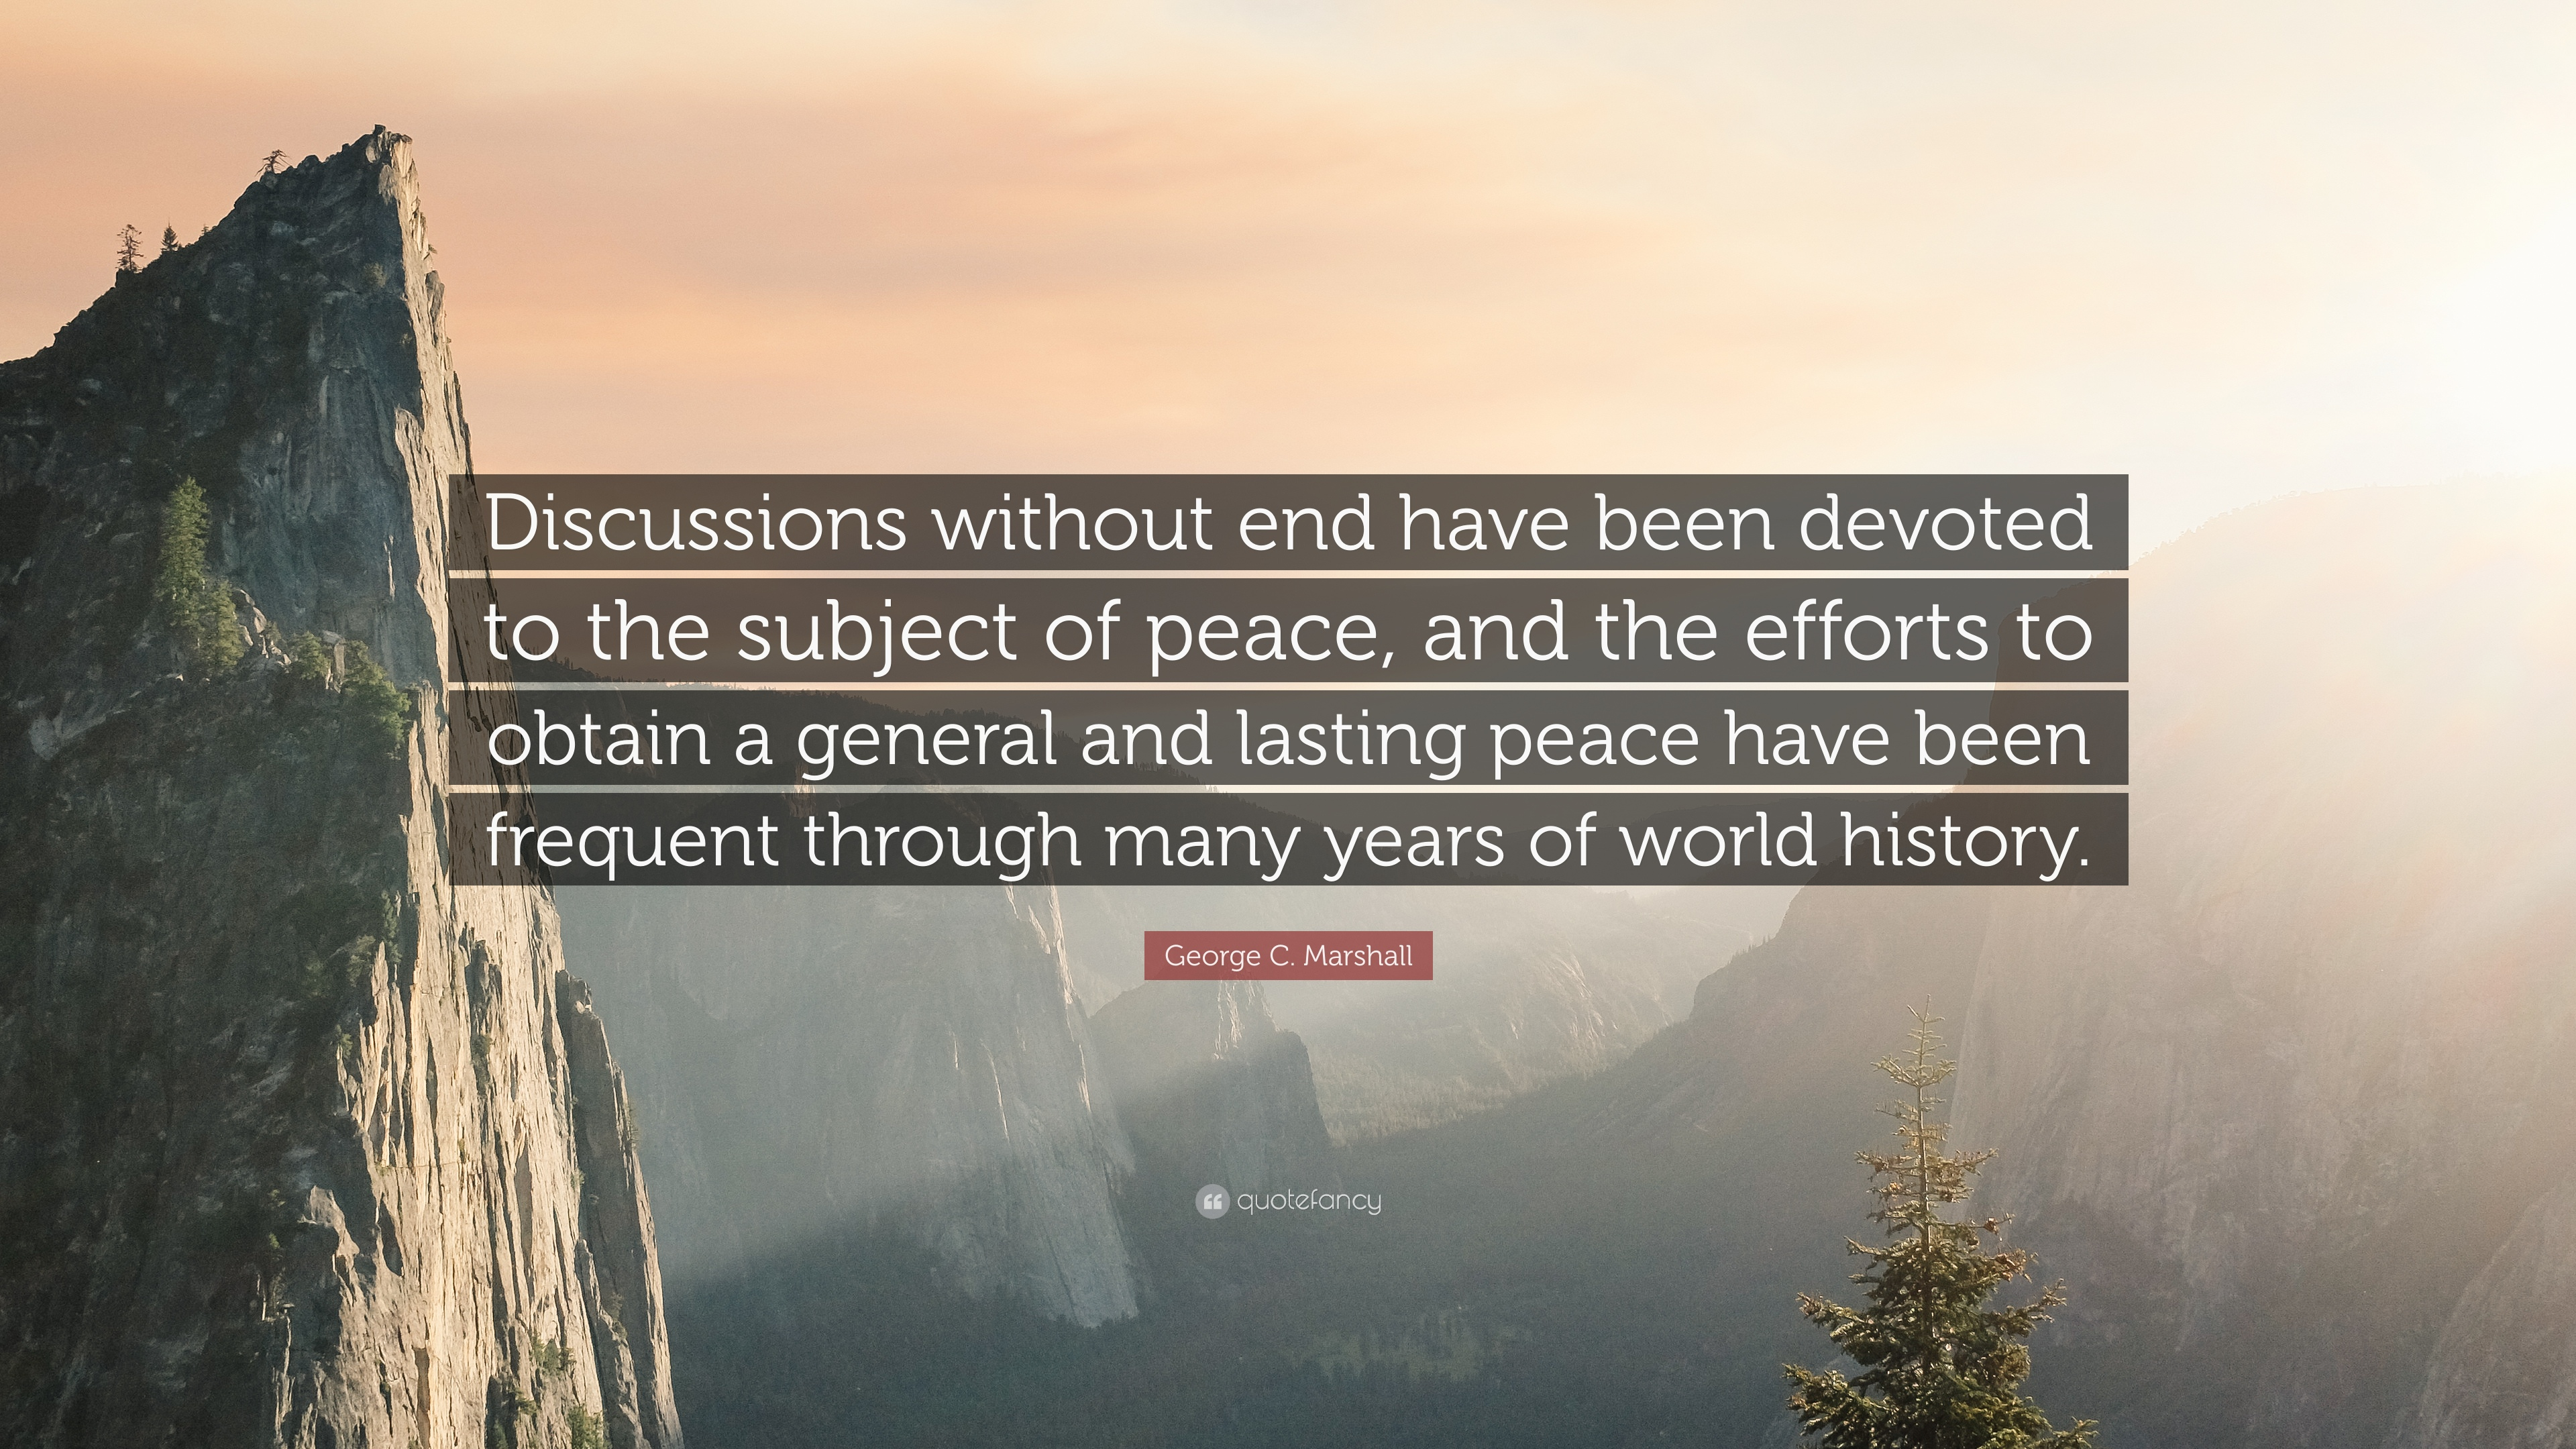 General george c marshall quotes - George C Marshall Quote Discussions Without End Have Been Devoted To The Subject